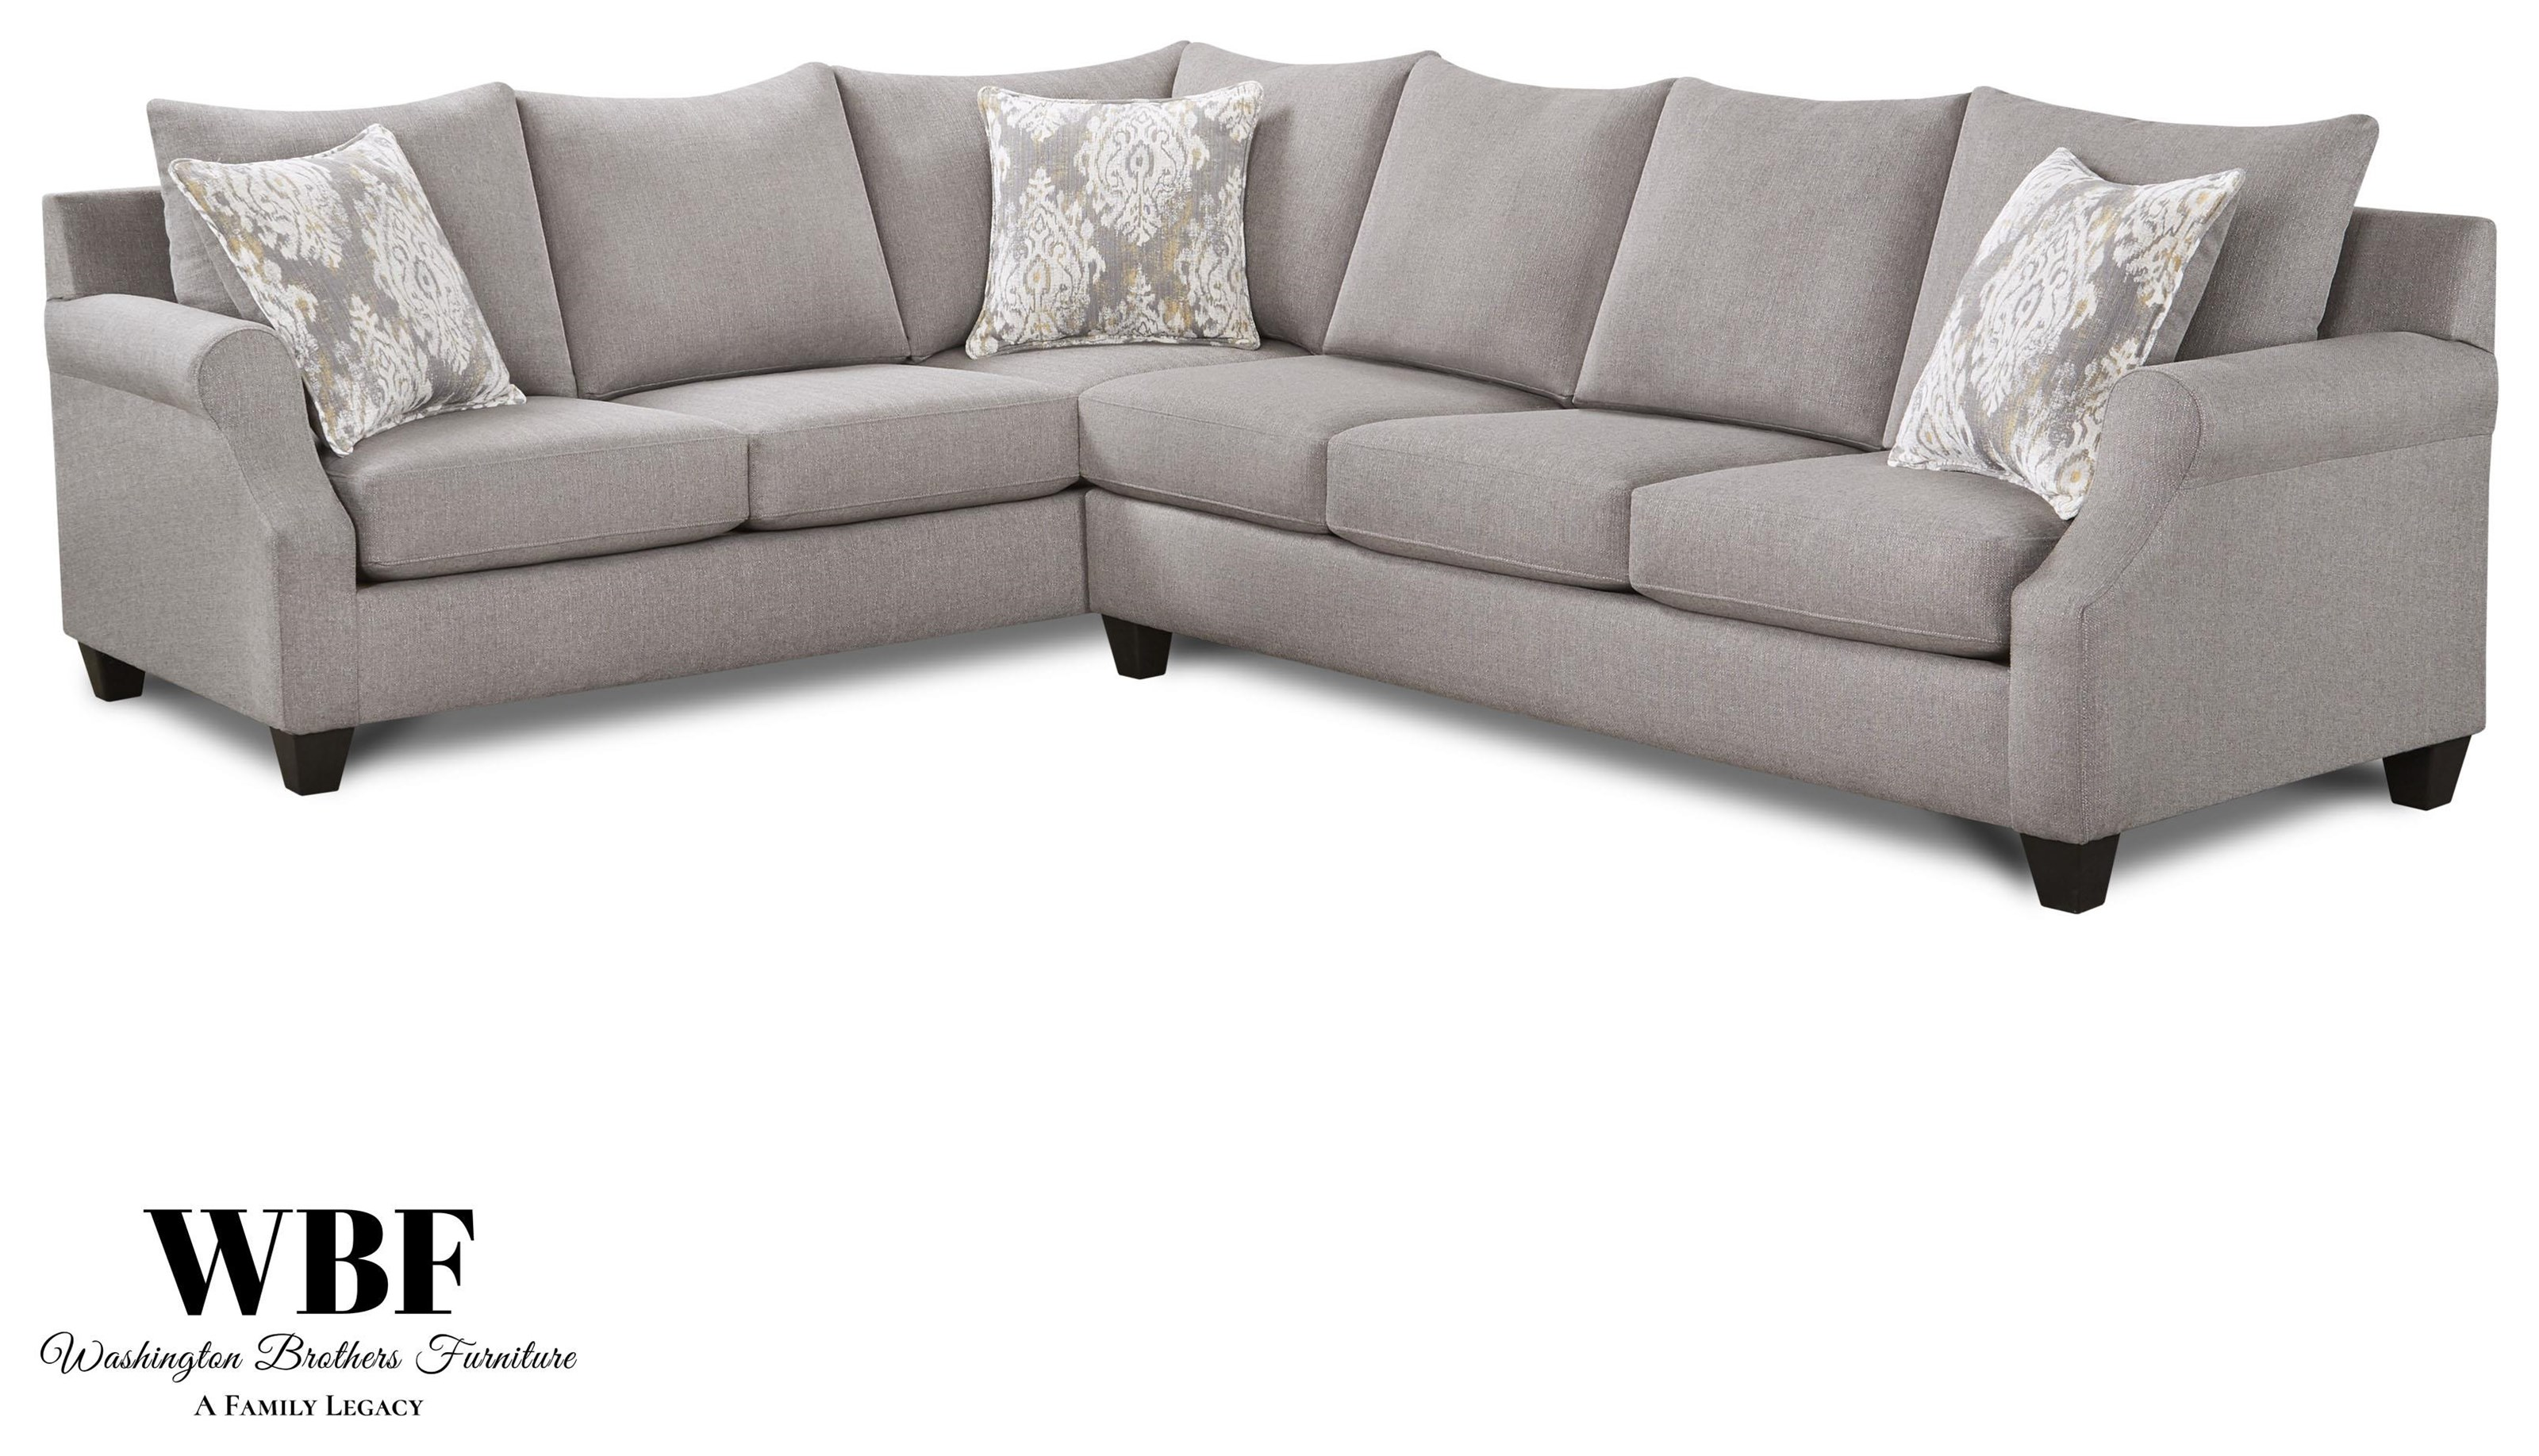 1197 Sectional Two Piece Grey Sectional by Washington Brothers Furniture at Furniture Fair - North Carolina